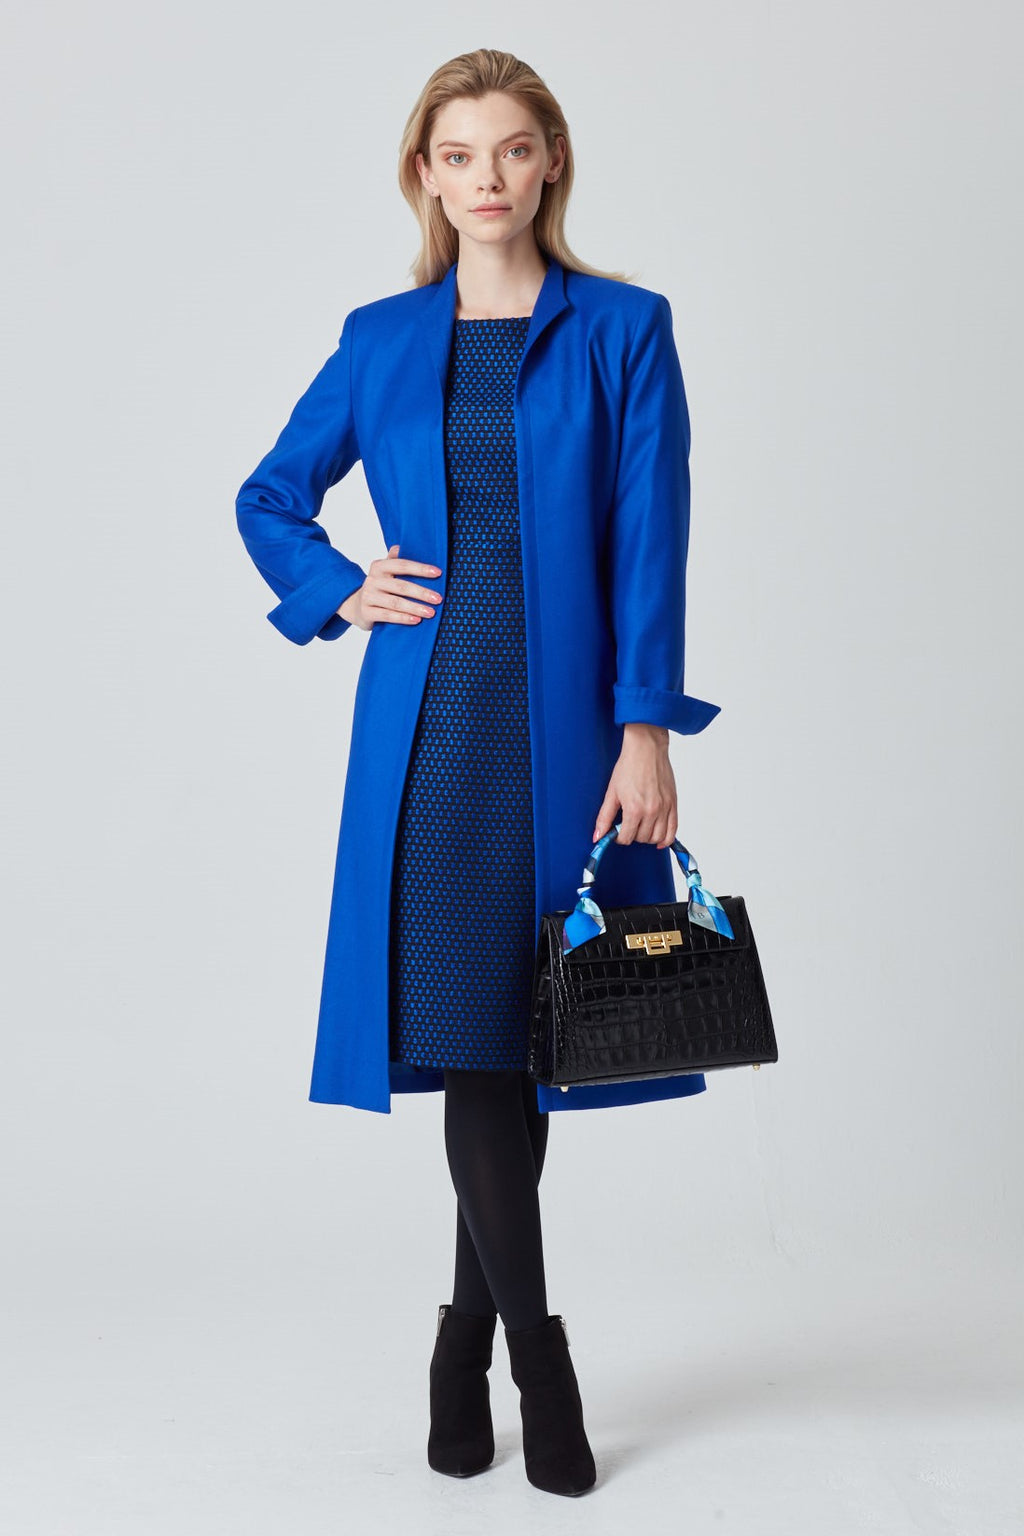 Sapphire Blue Coat in Light-Weight Wool - Leila